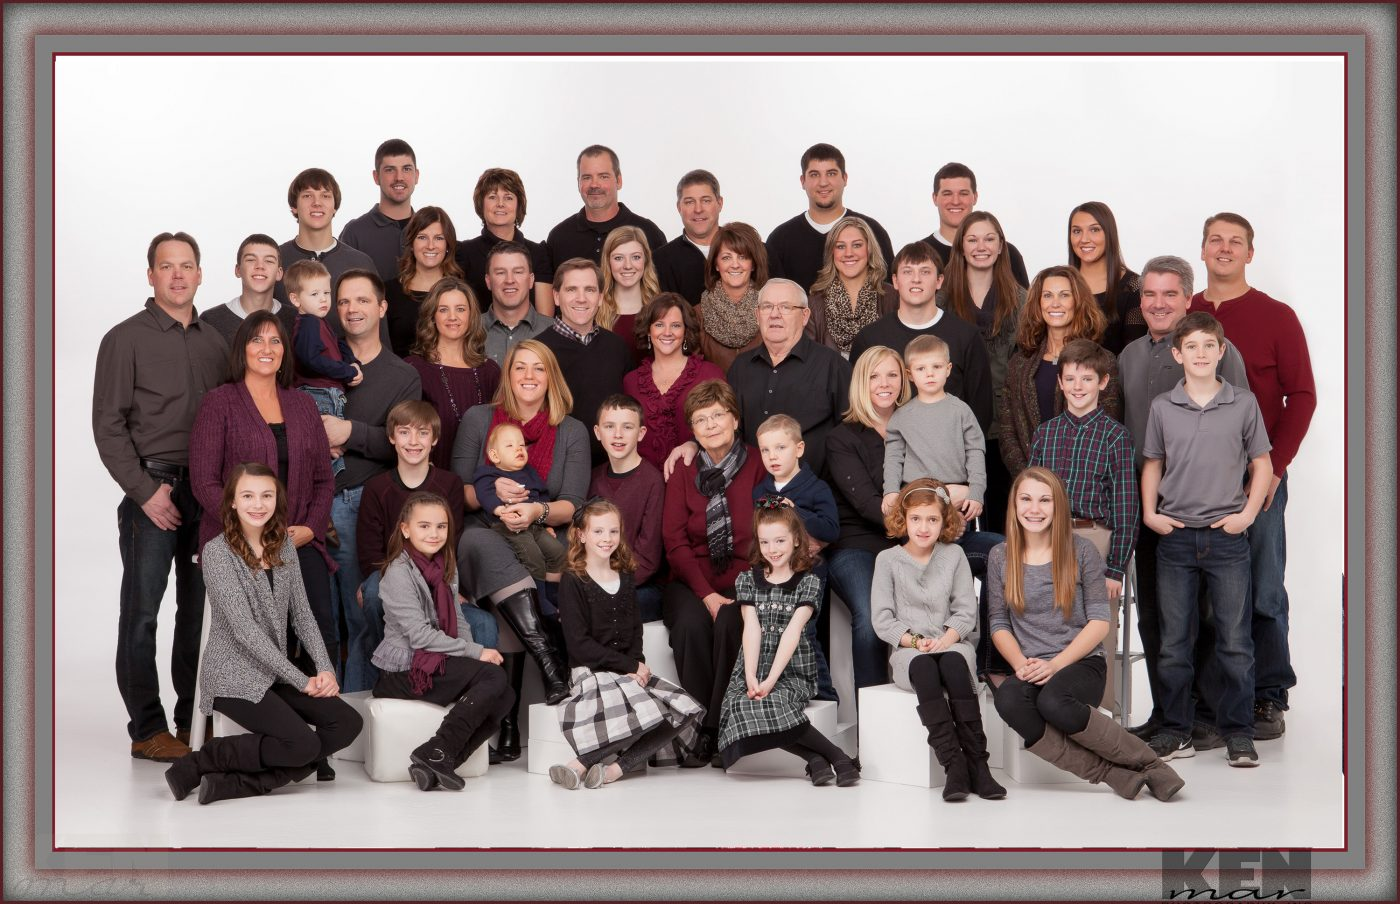 Fourty (40) people comfortably posed for a family grouping in the studio.